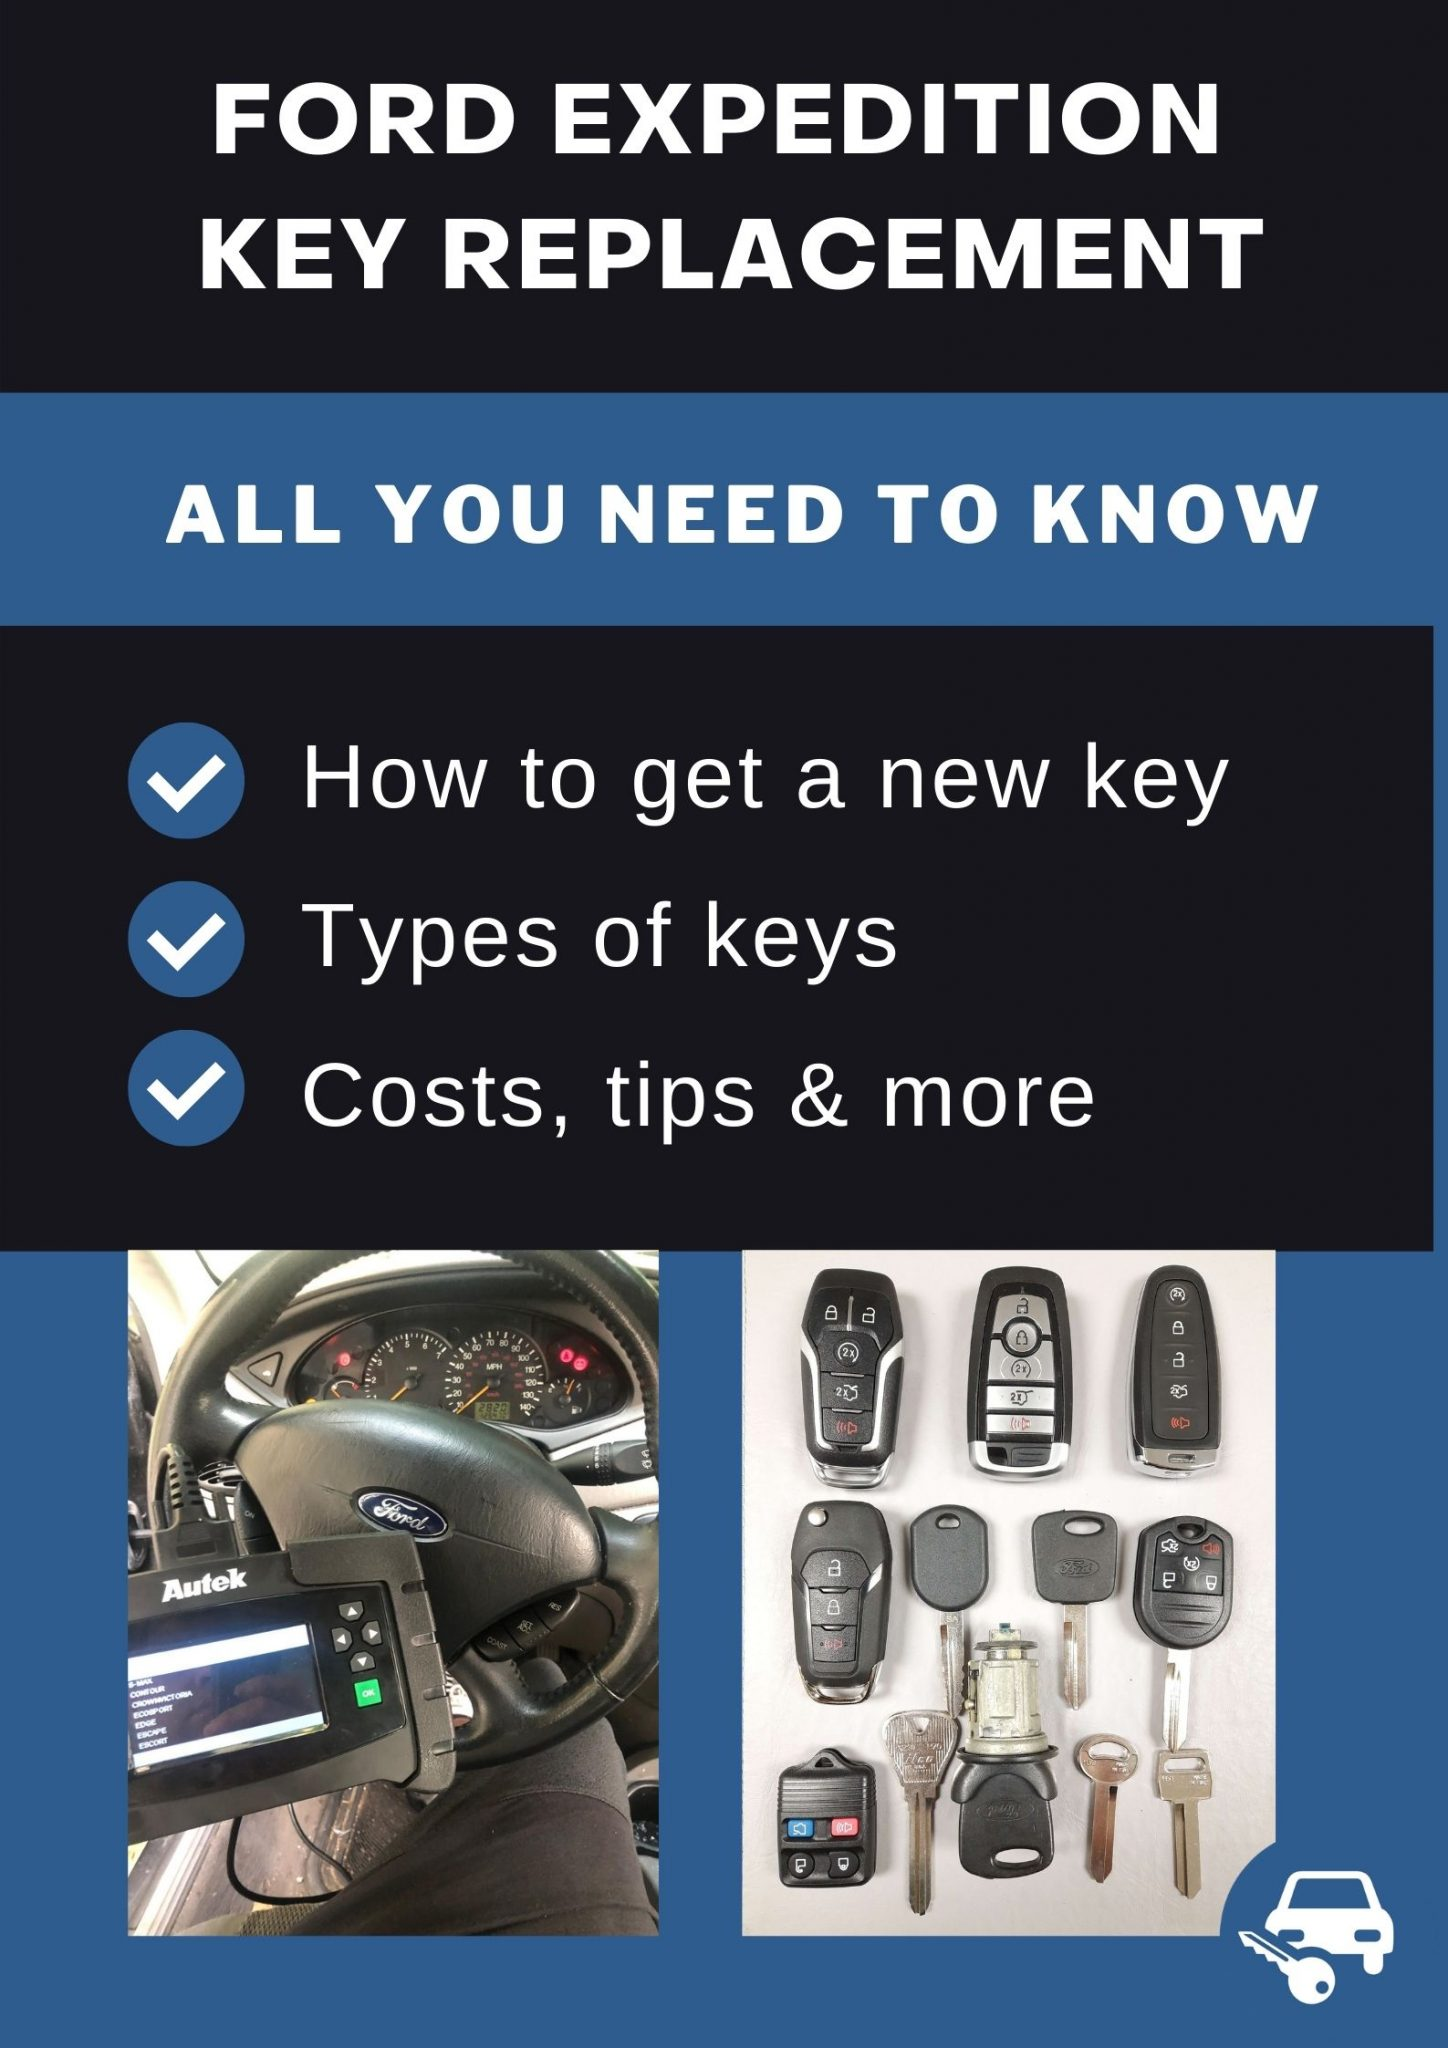 Ford Expedition Replacement Keys What To Do Options Cost More